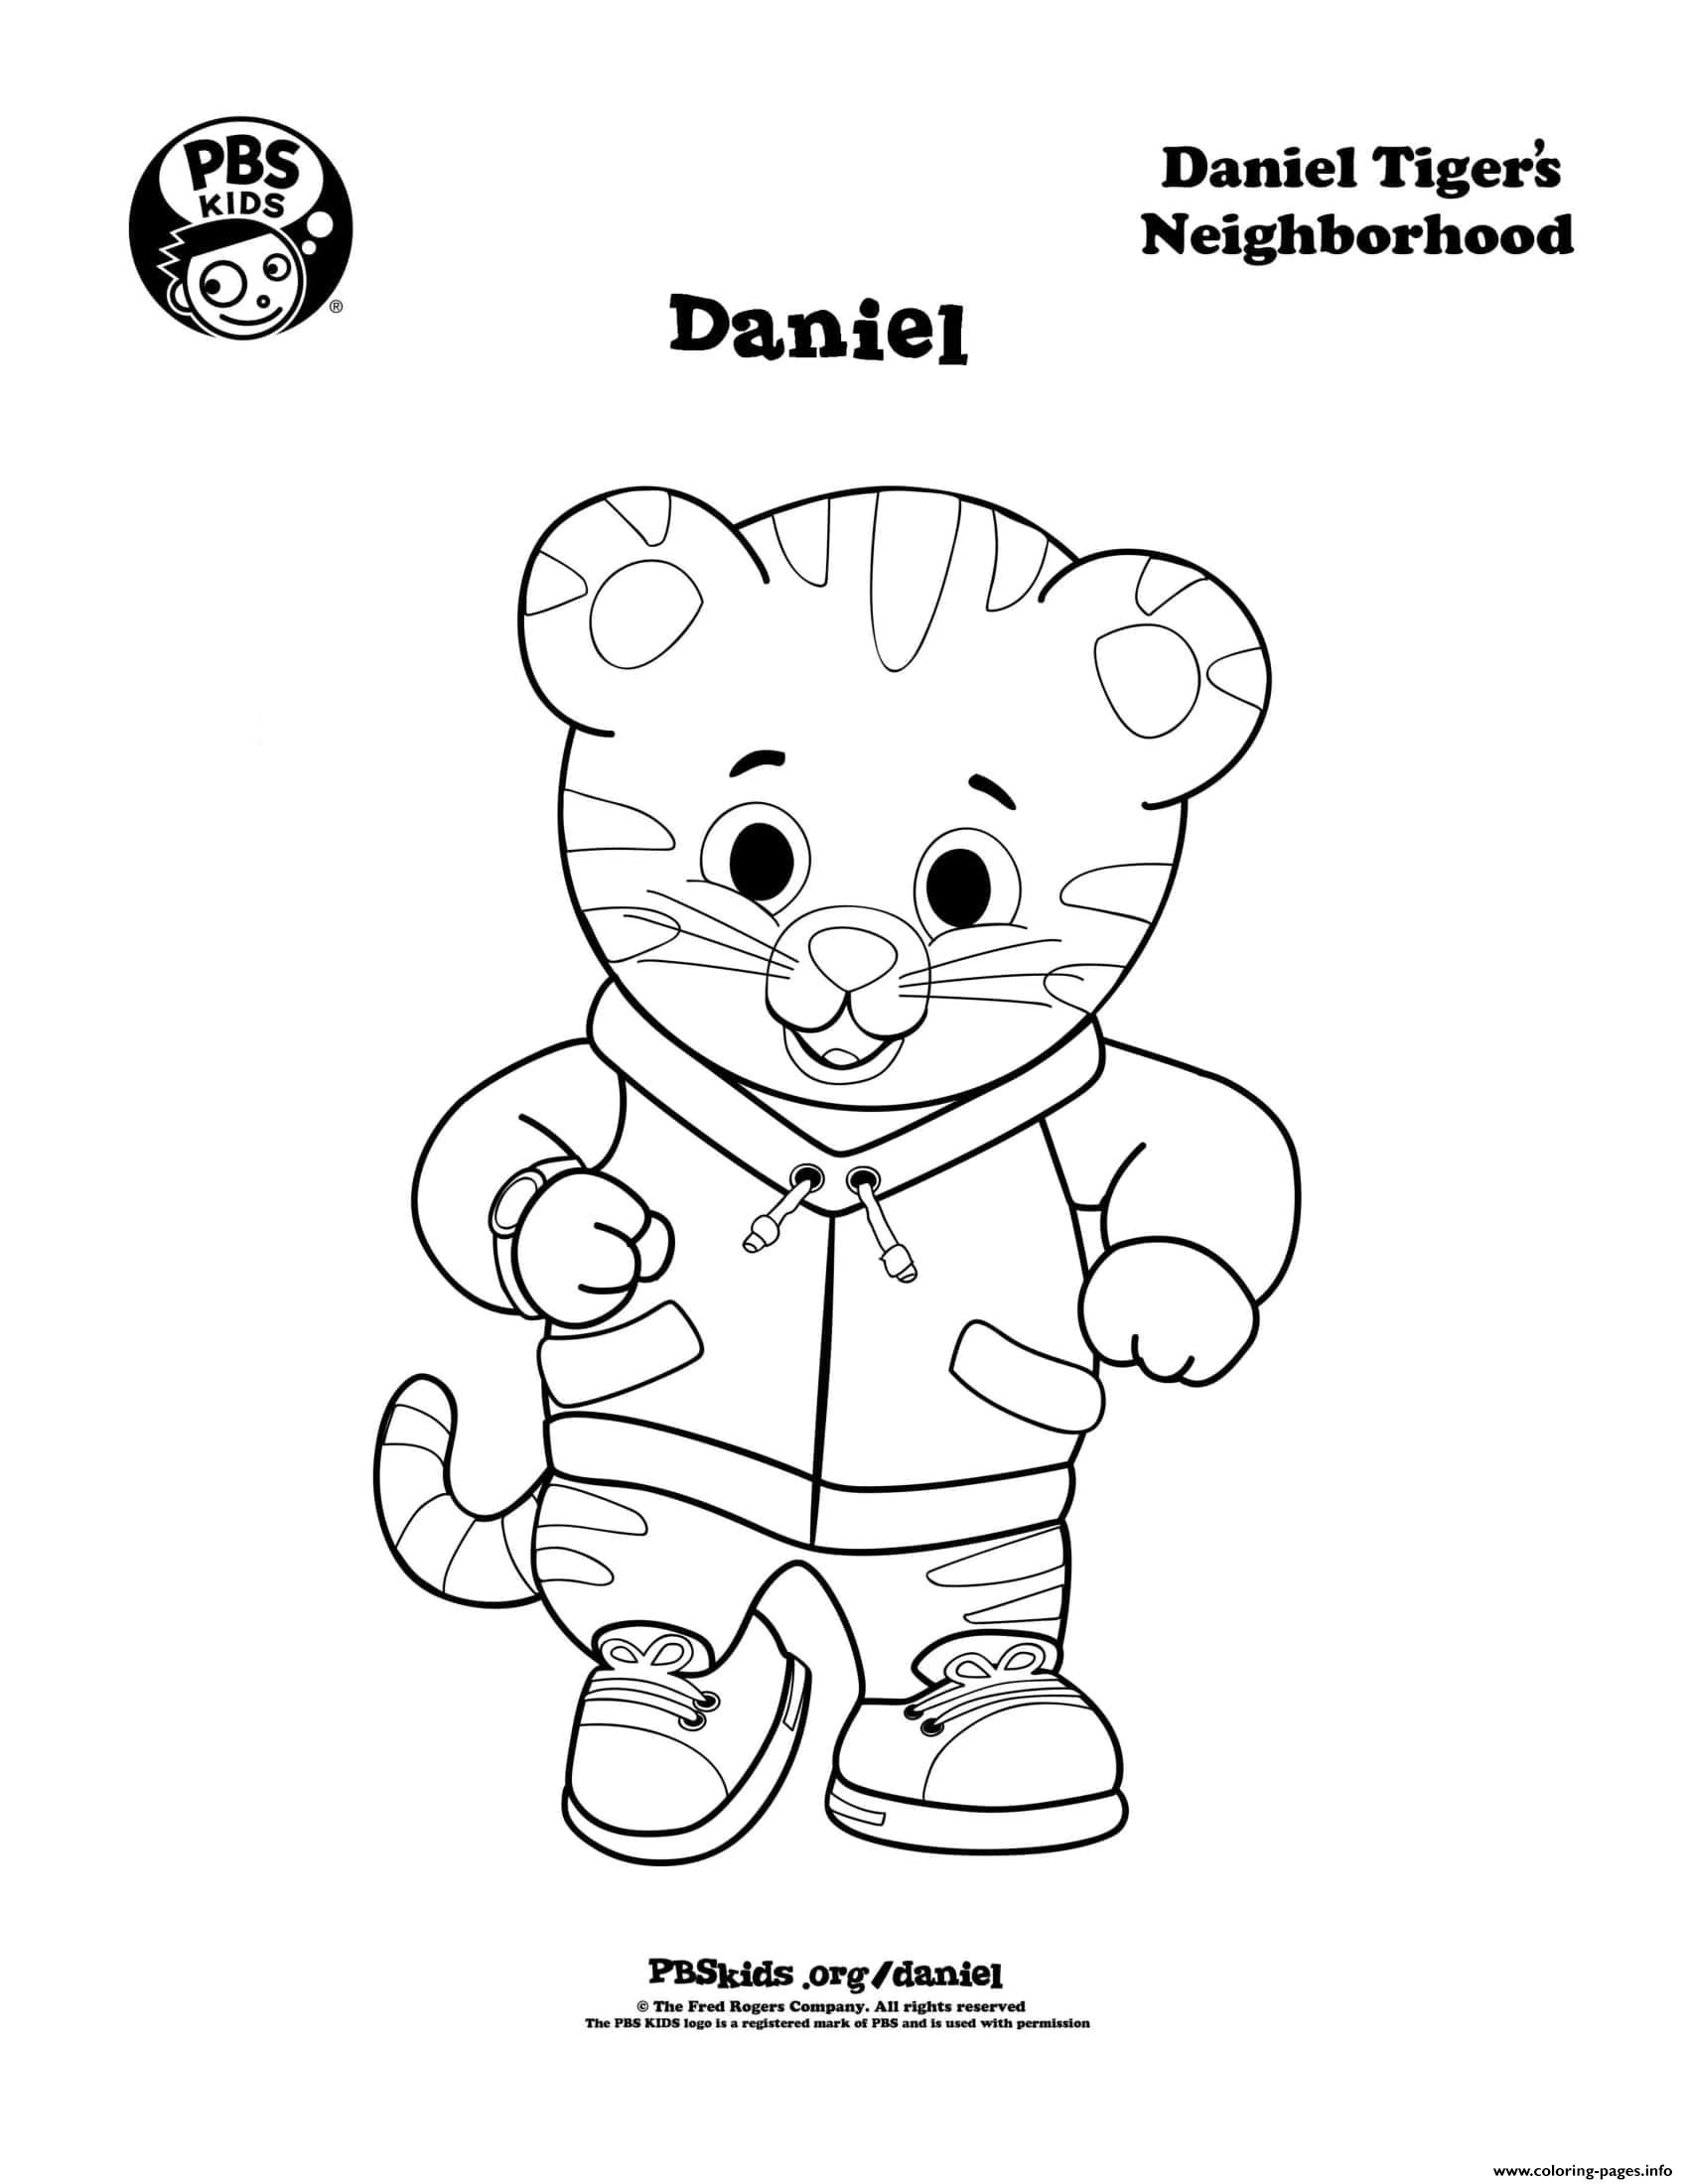 Daniel Tiger Min coloring pages